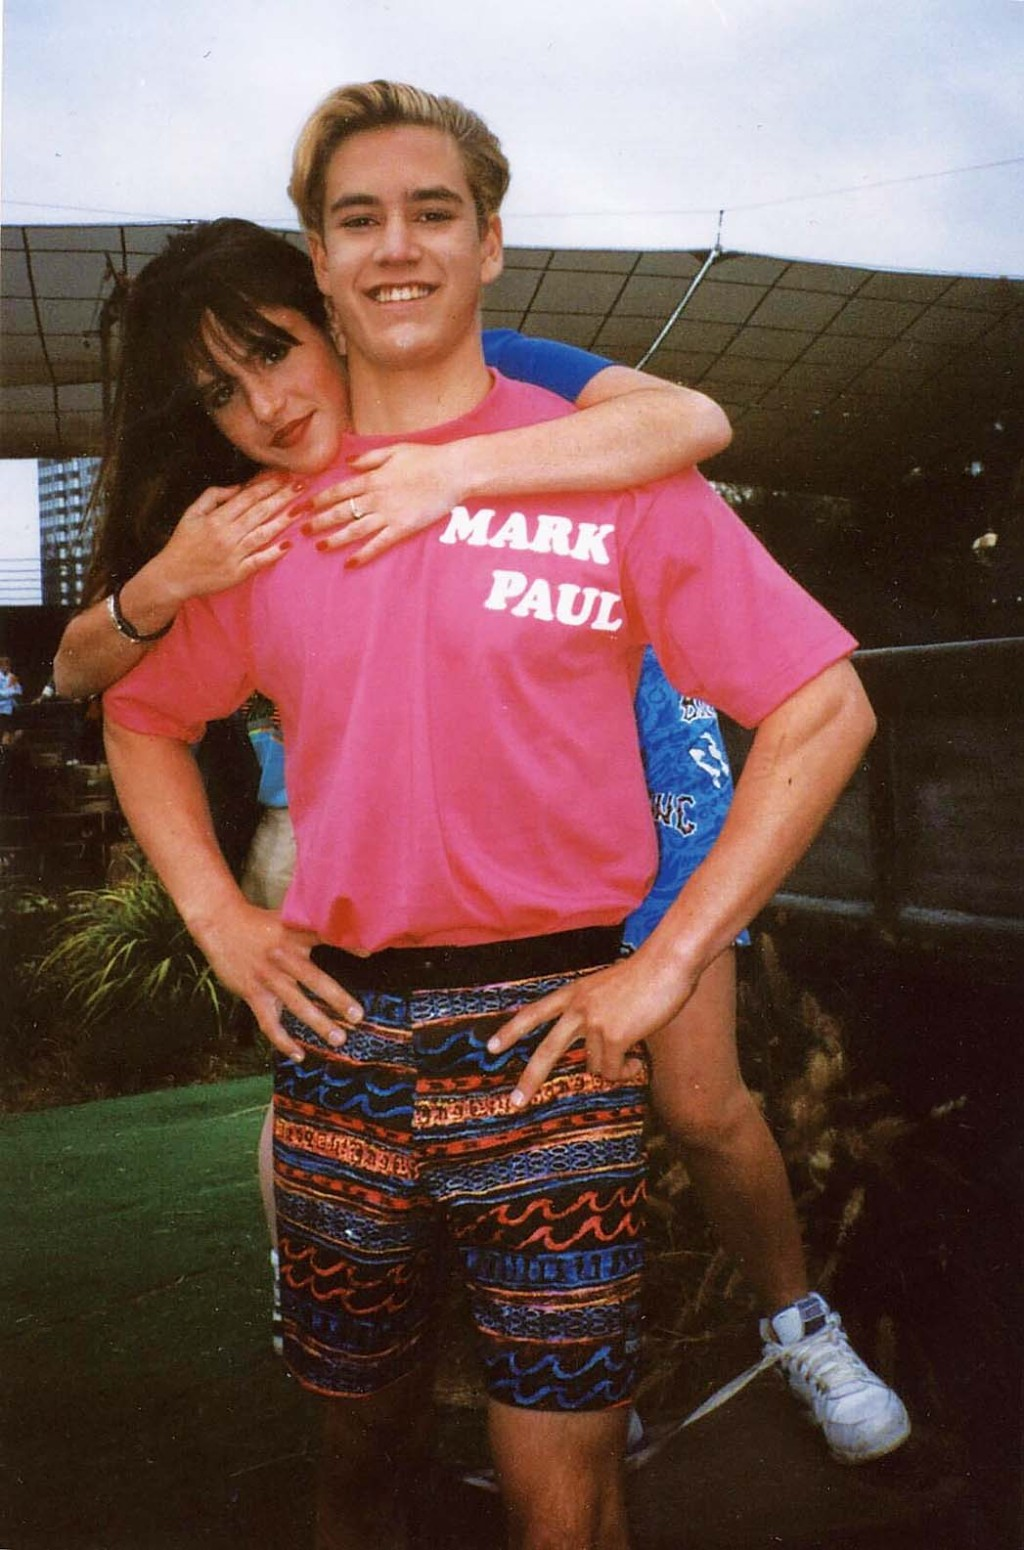 """With Mark-Paul Gosselaar, who appeared on Punky Brewster before Saved by the Bell. """"He was always so kind to me,"""" she says."""